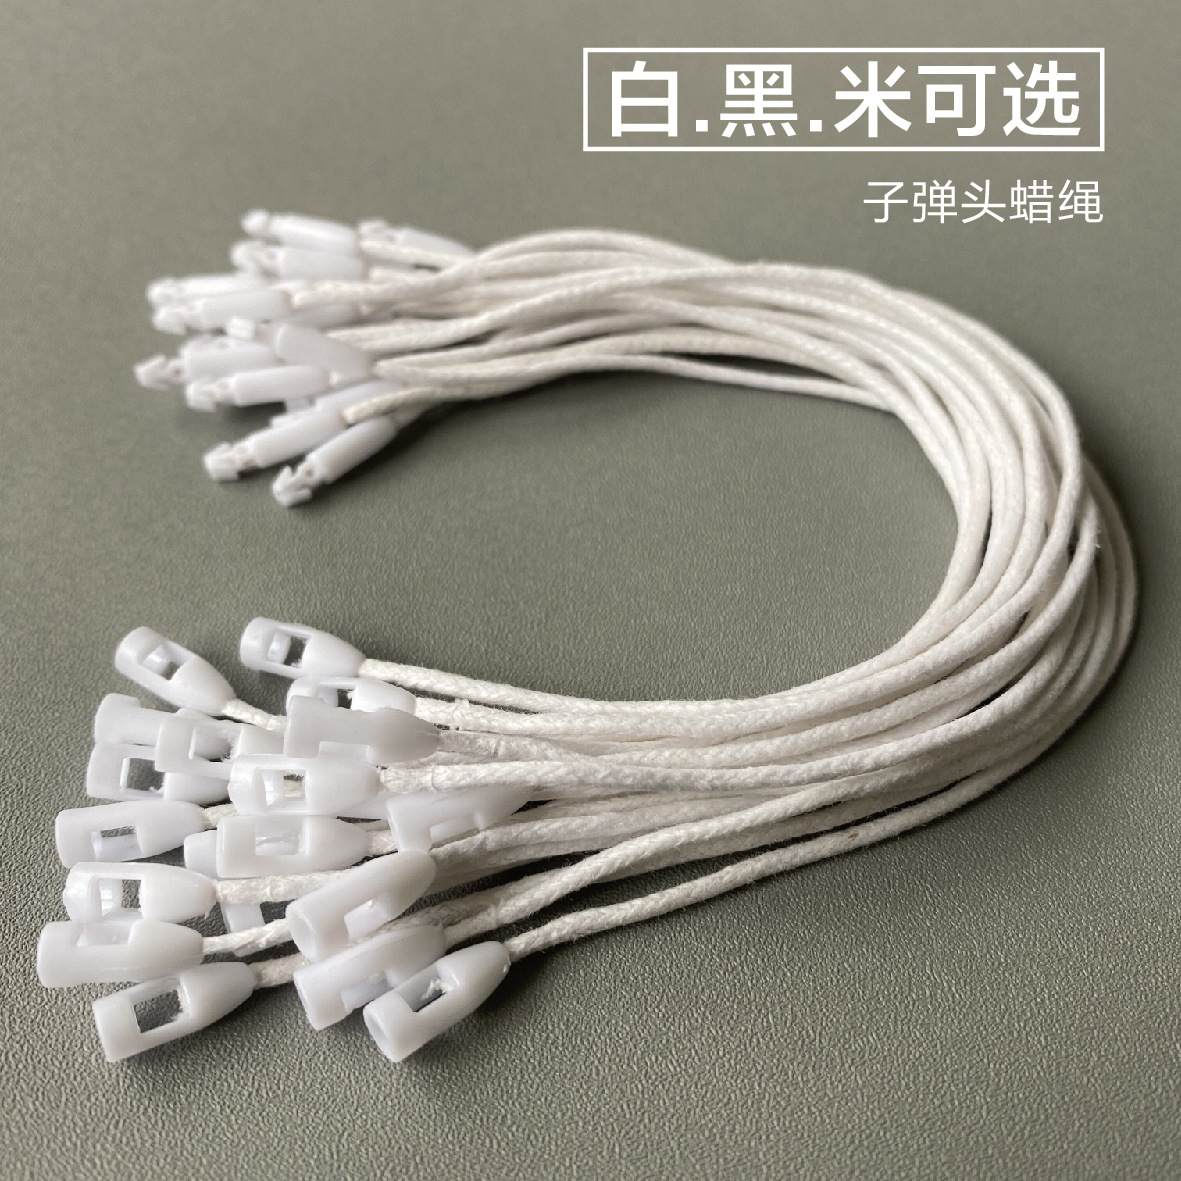 TENGCAI Clothing hanging grain textile accessories color tag wax rope new home textile polyester tag